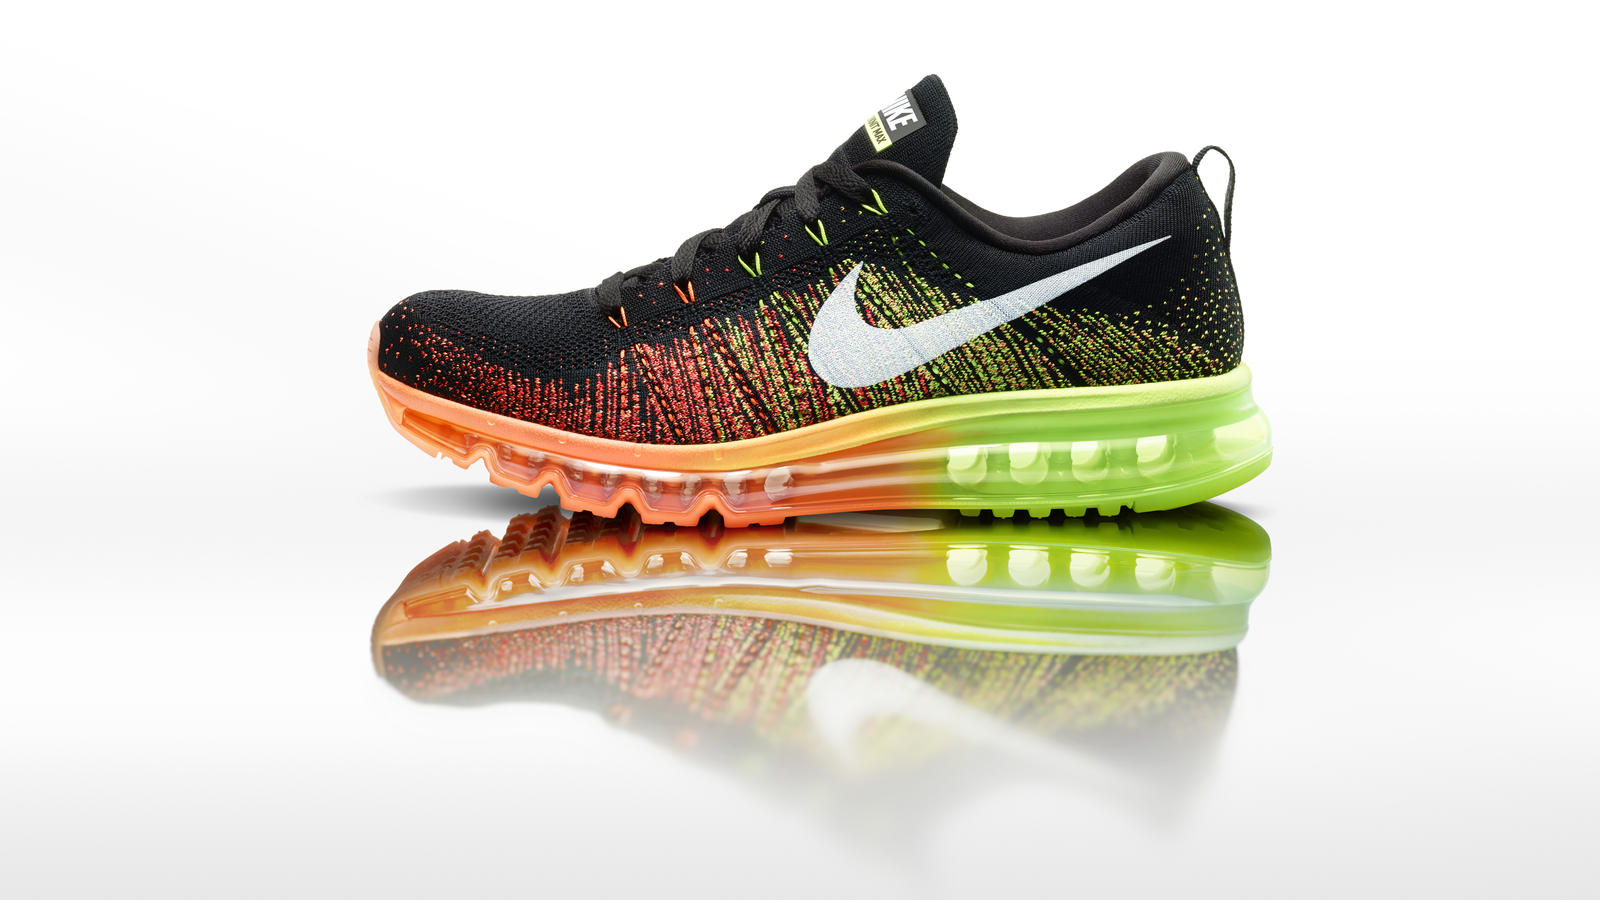 nike flyknit air max mens profile. nike flyknit air max womens profile.  nike flyknit air max womens detail3. nike air max 2014 womens detail1 ec621ba73